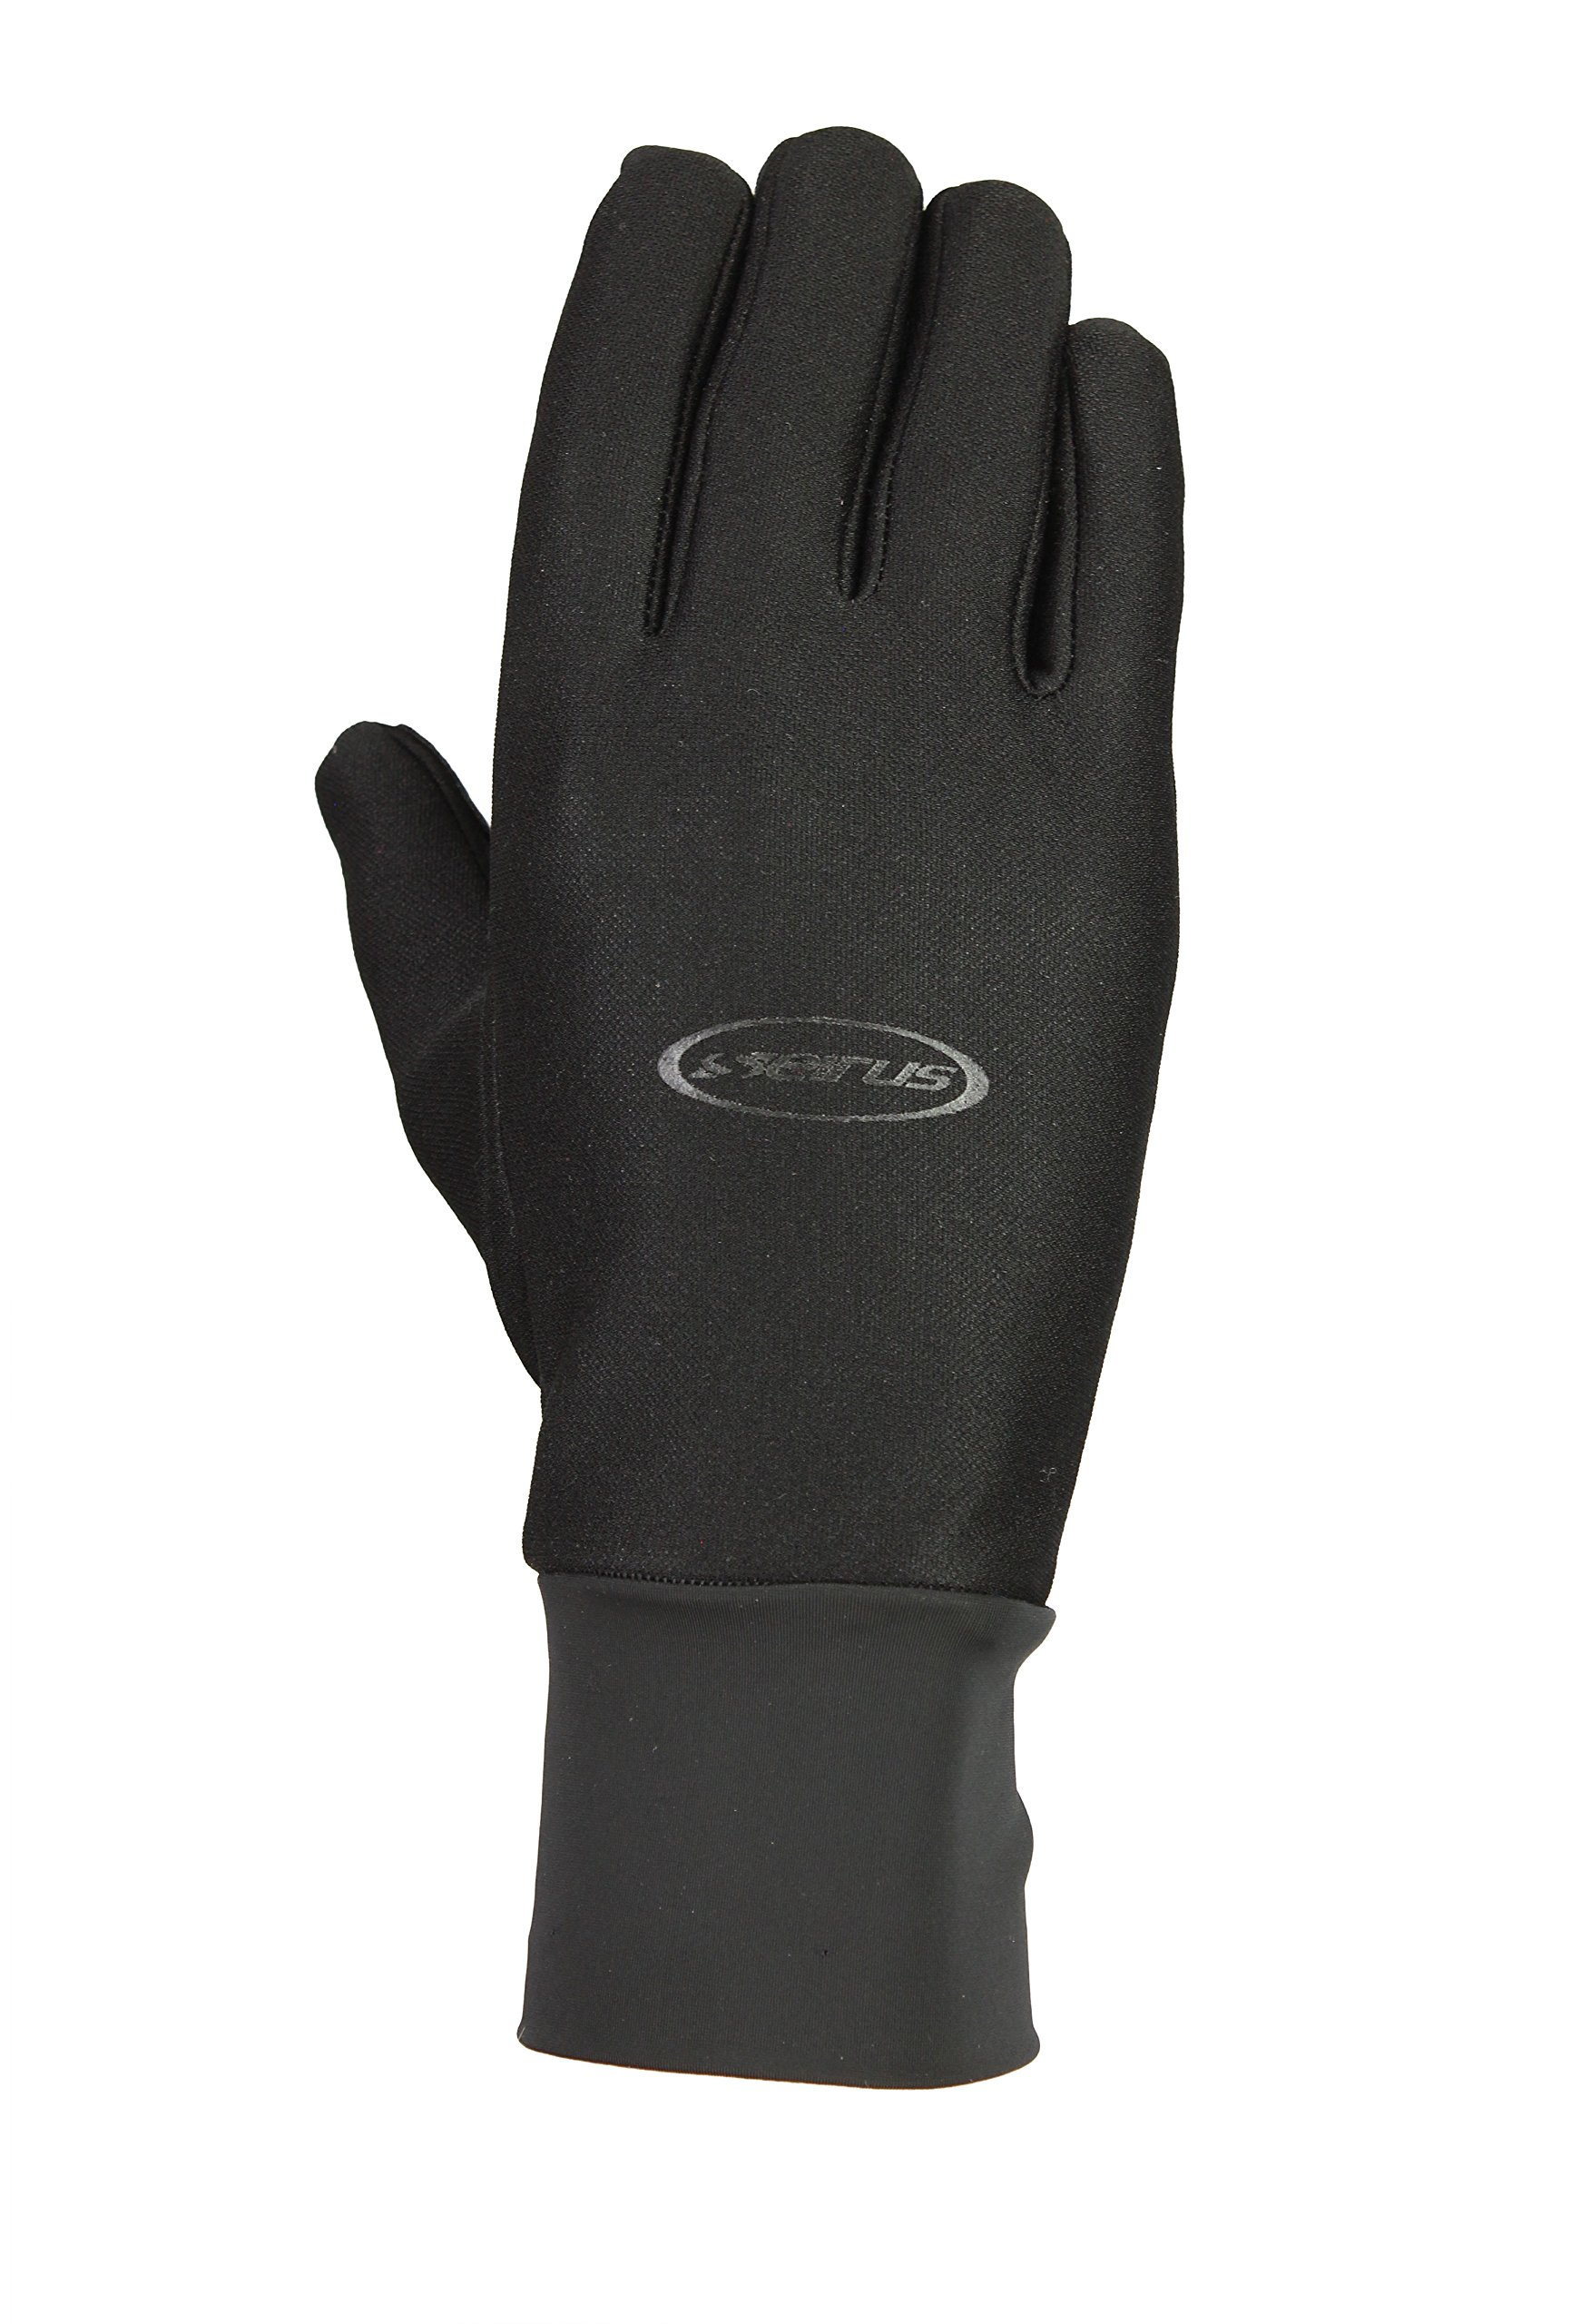 Serius Innovation 1431 Womens Ladies Hyperlite All Weather Polartec Ultra-Thin Weatherproof Glove